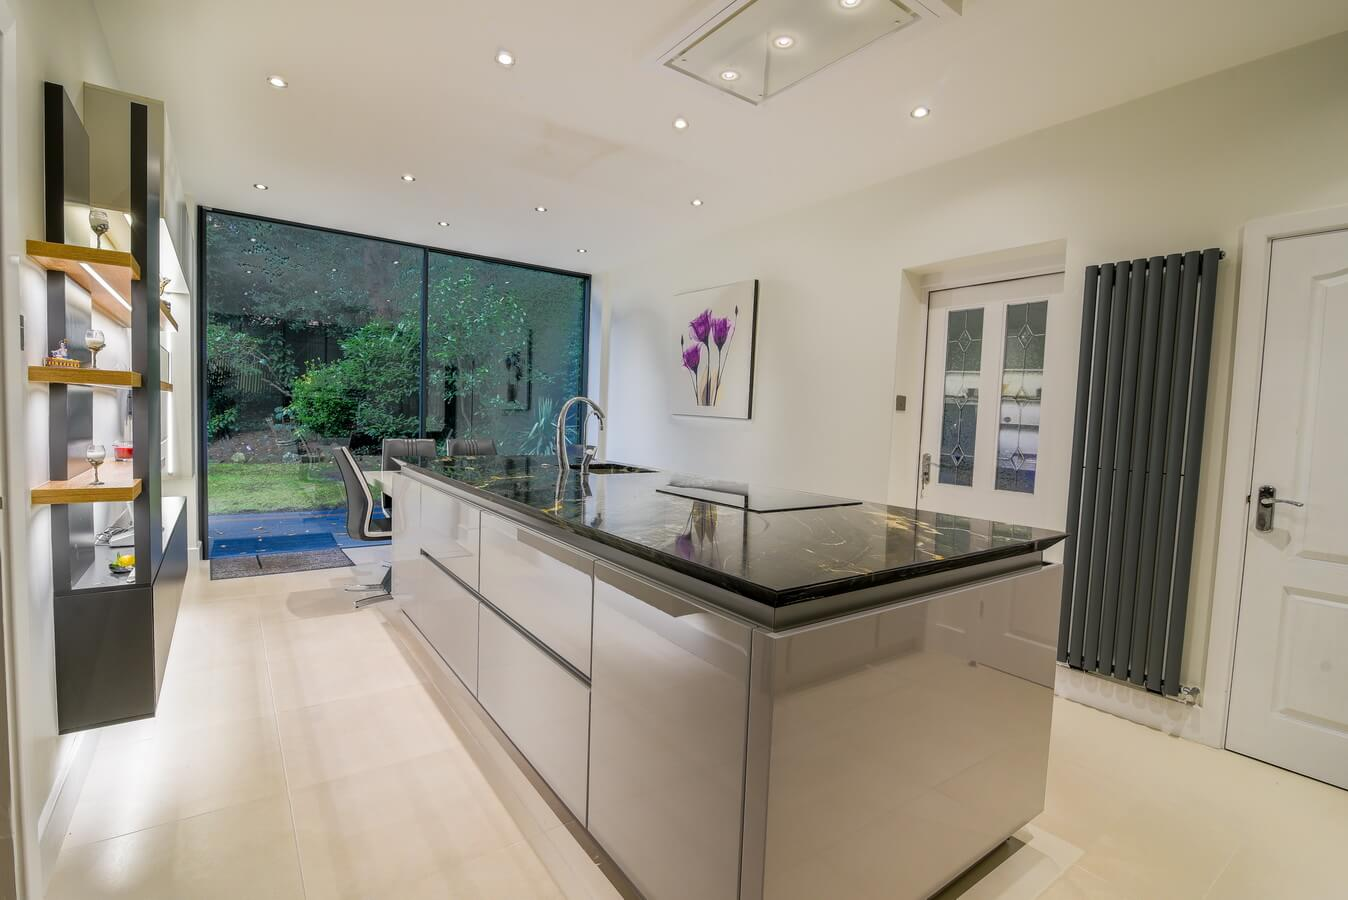 handleless-fitted-kitchen-London-Finchley-Road.jpg